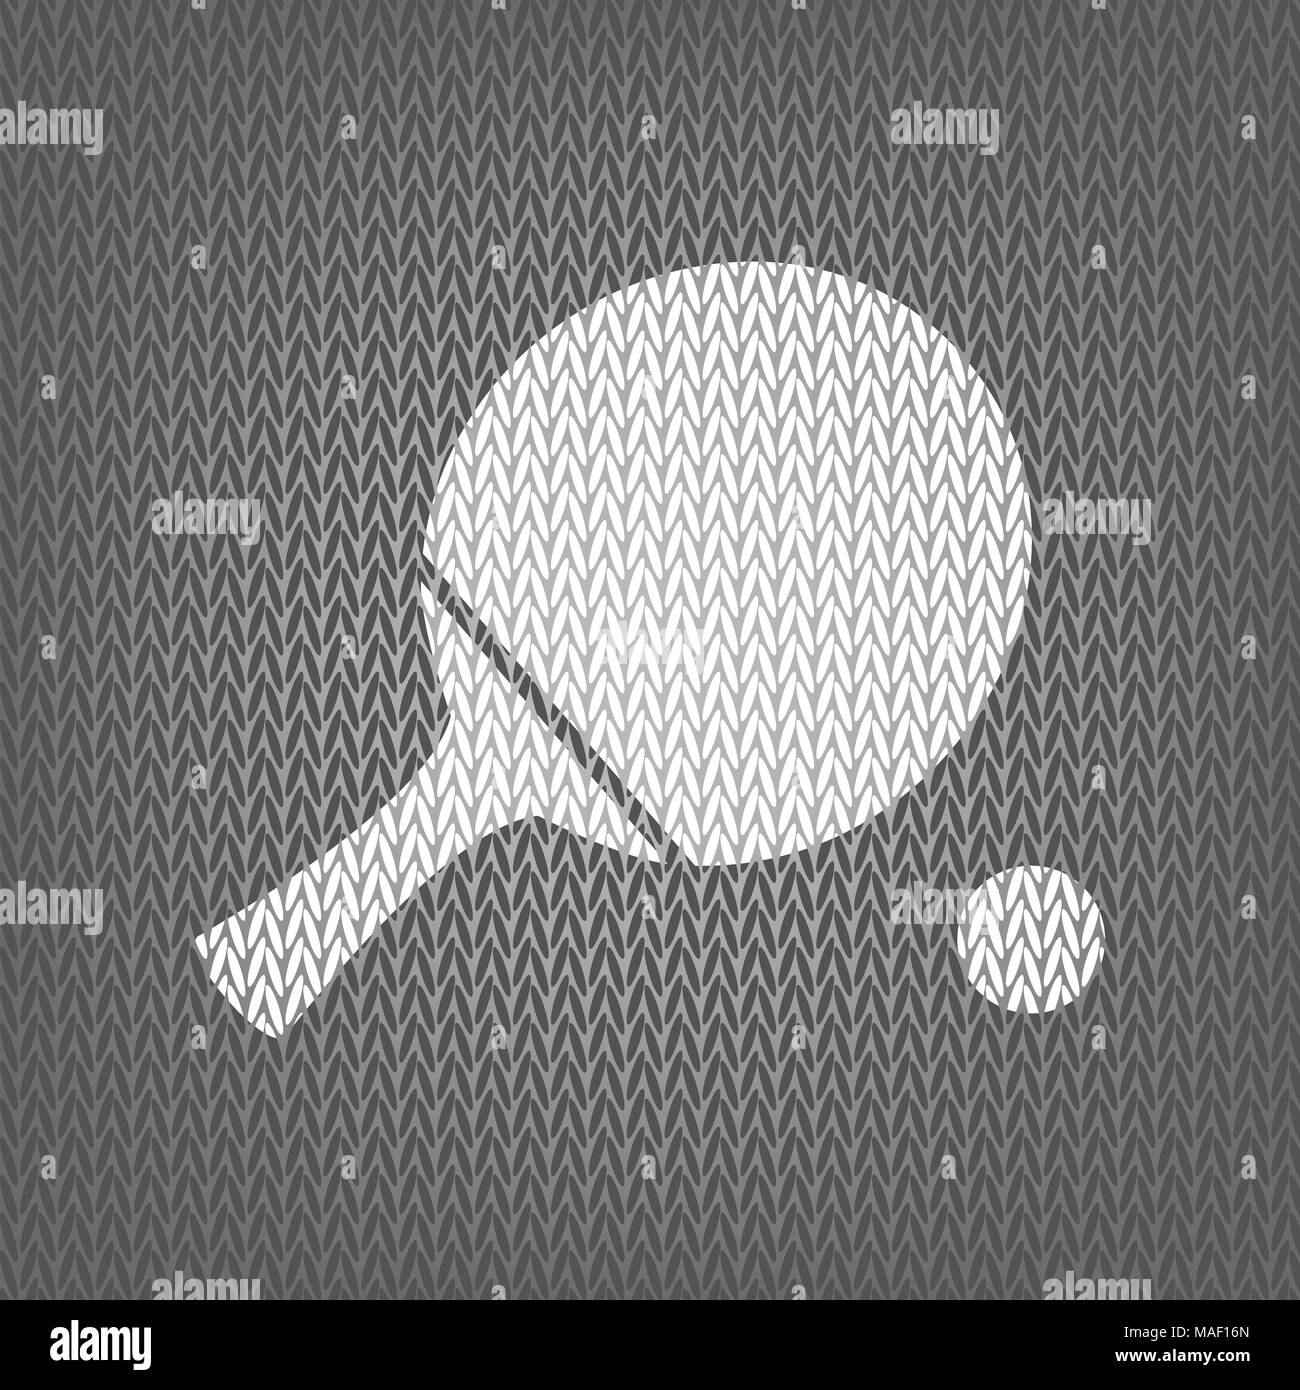 Ping Pong Paddle Vector Vectors Imágenes De Stock & Ping Pong Paddle ...